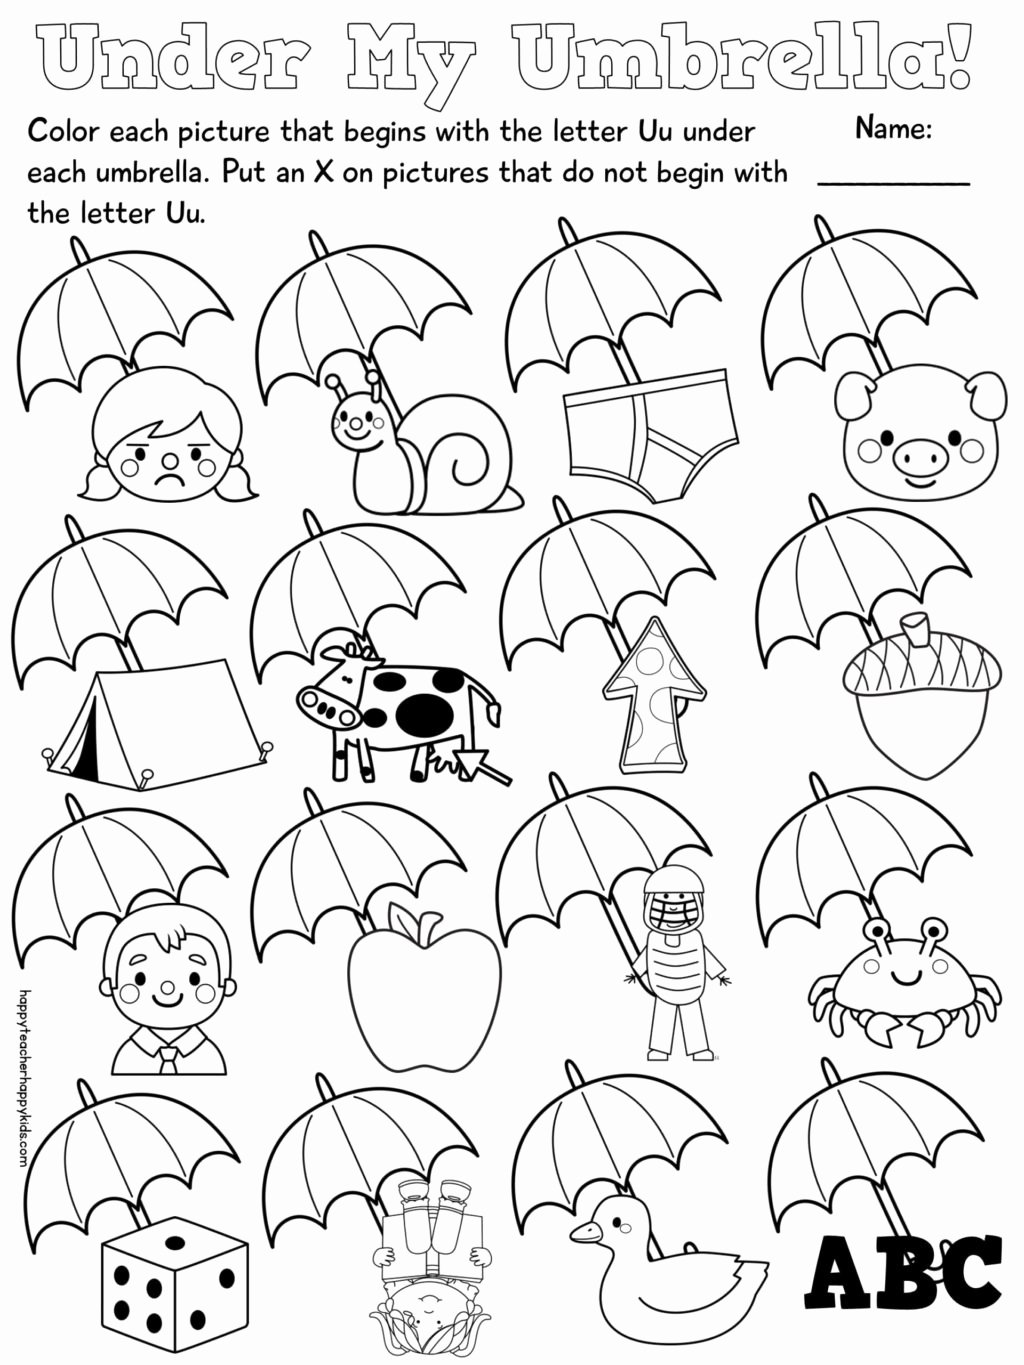 Feelings Worksheets for Preschoolers Unique Worksheet Printable Alphabet Activity Sheets Free Thising